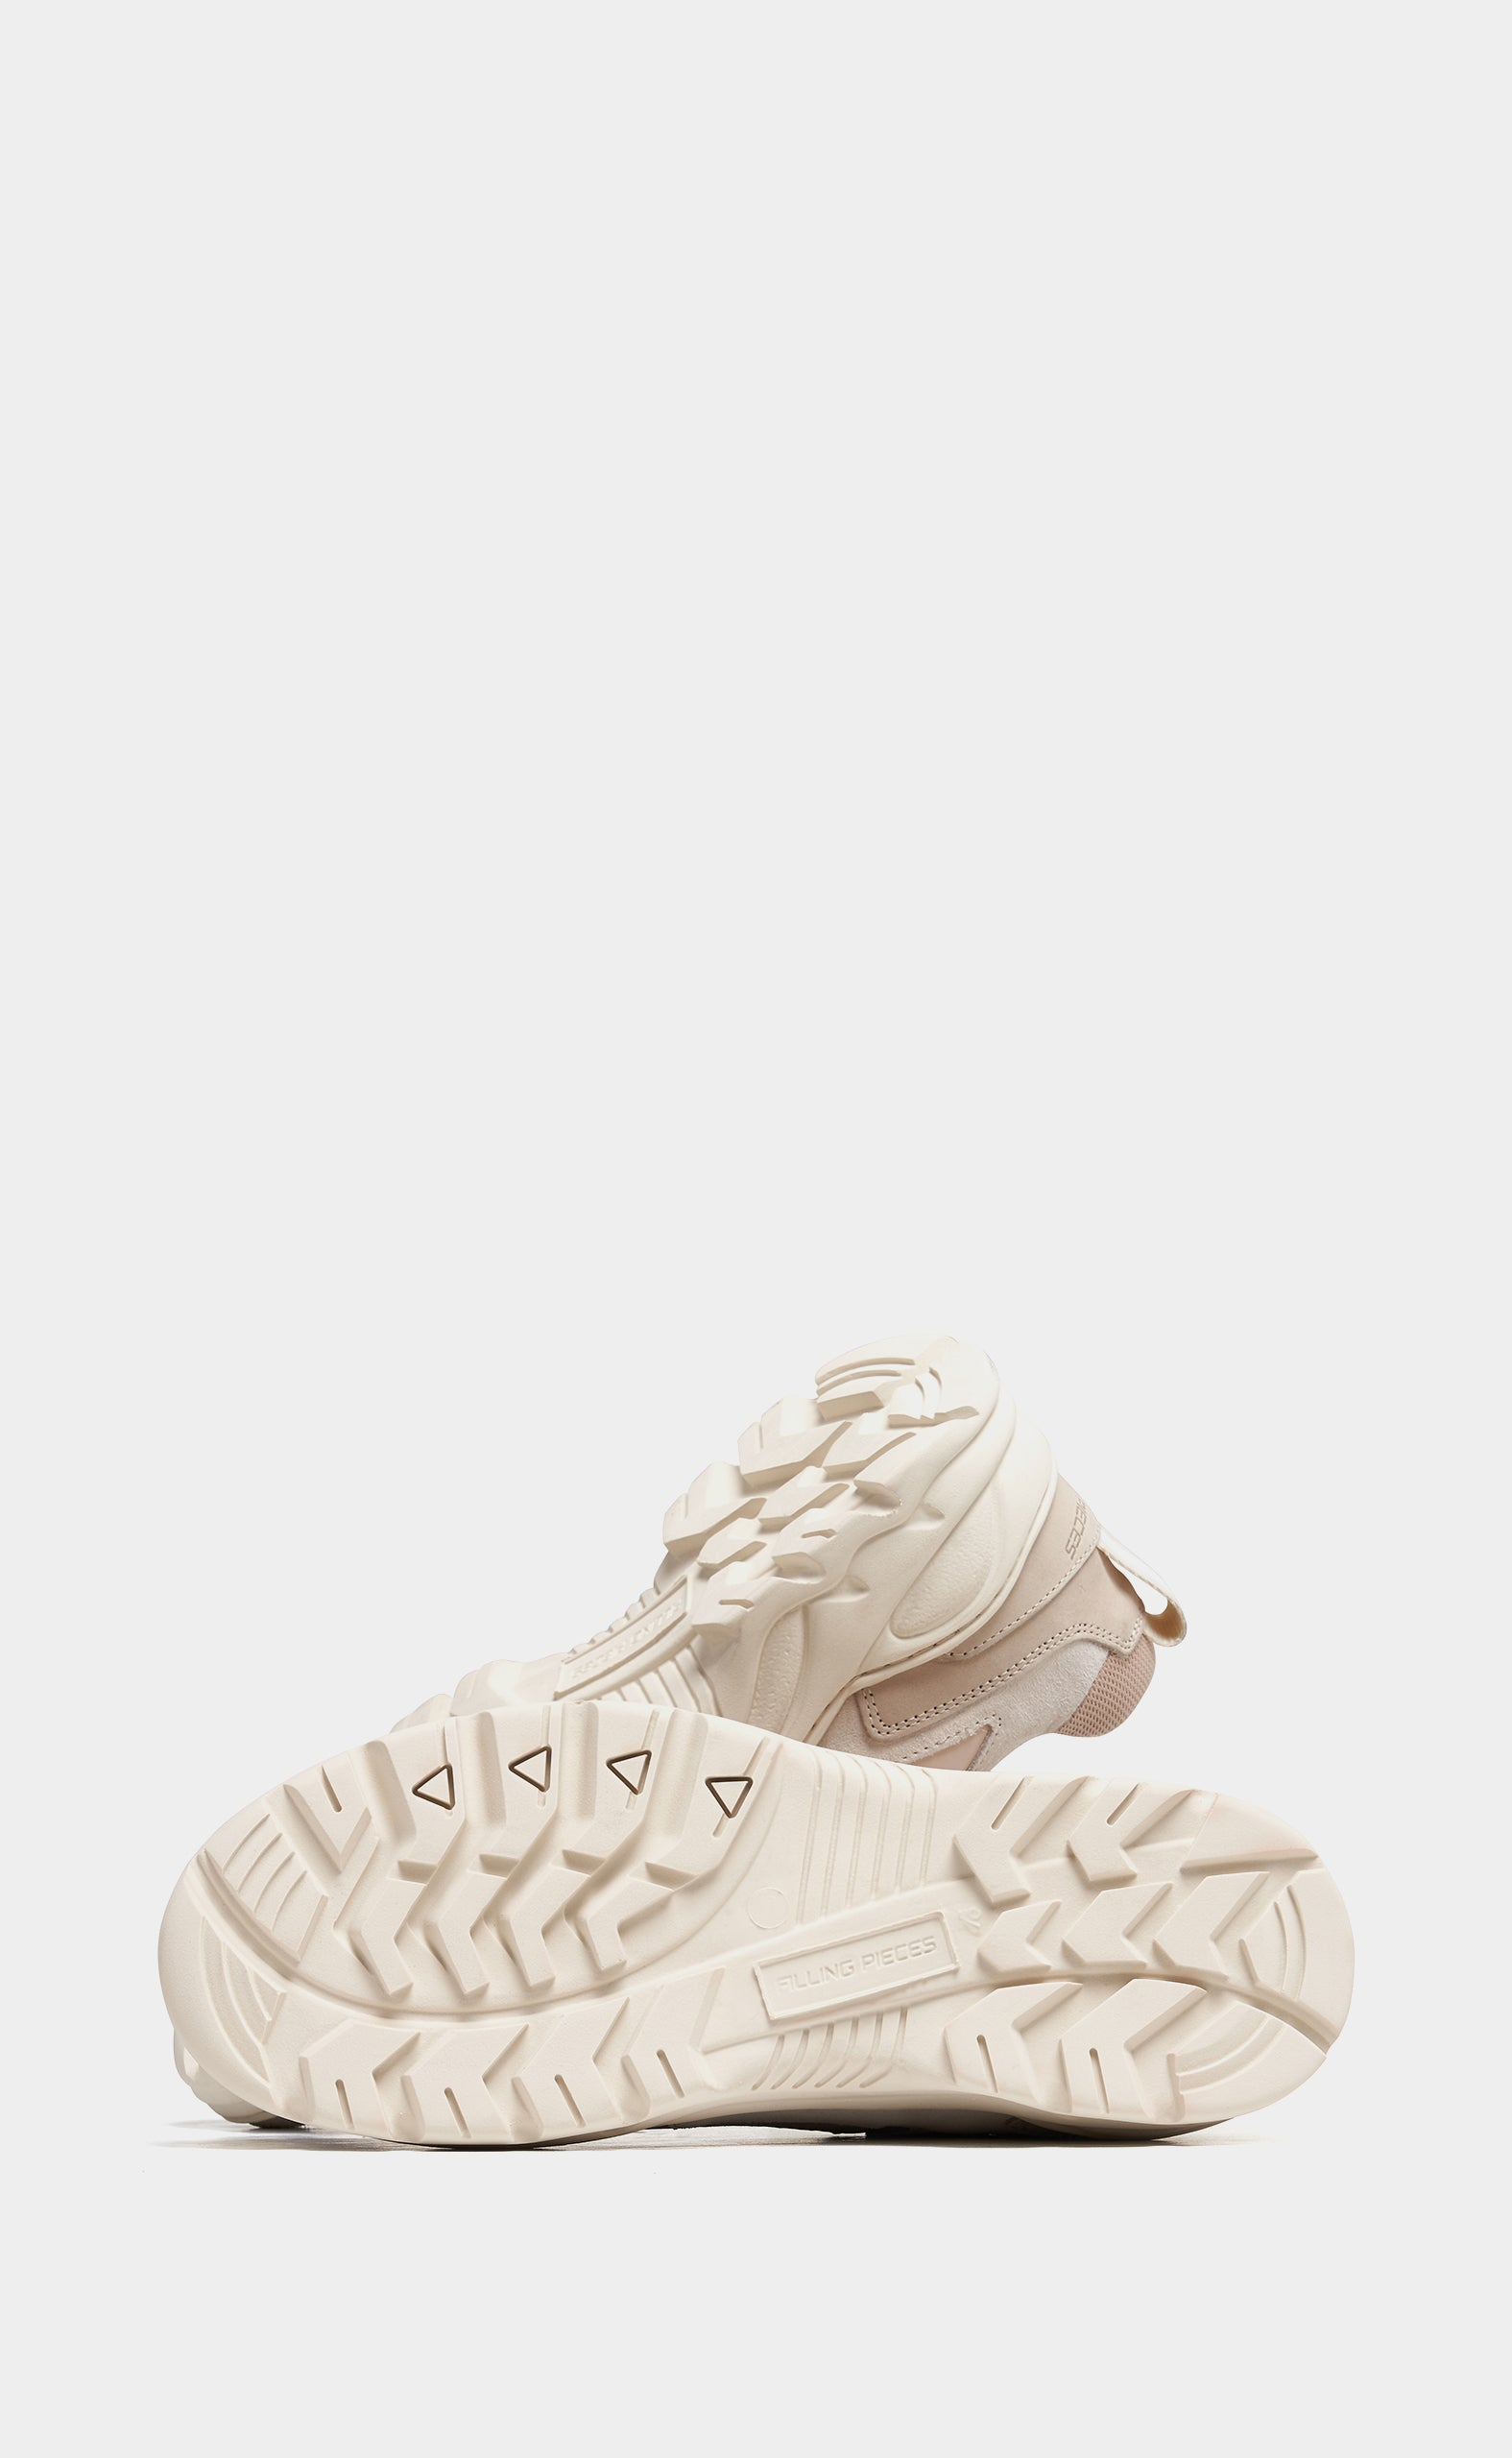 Low Curve Iceman Trimix White/Beige